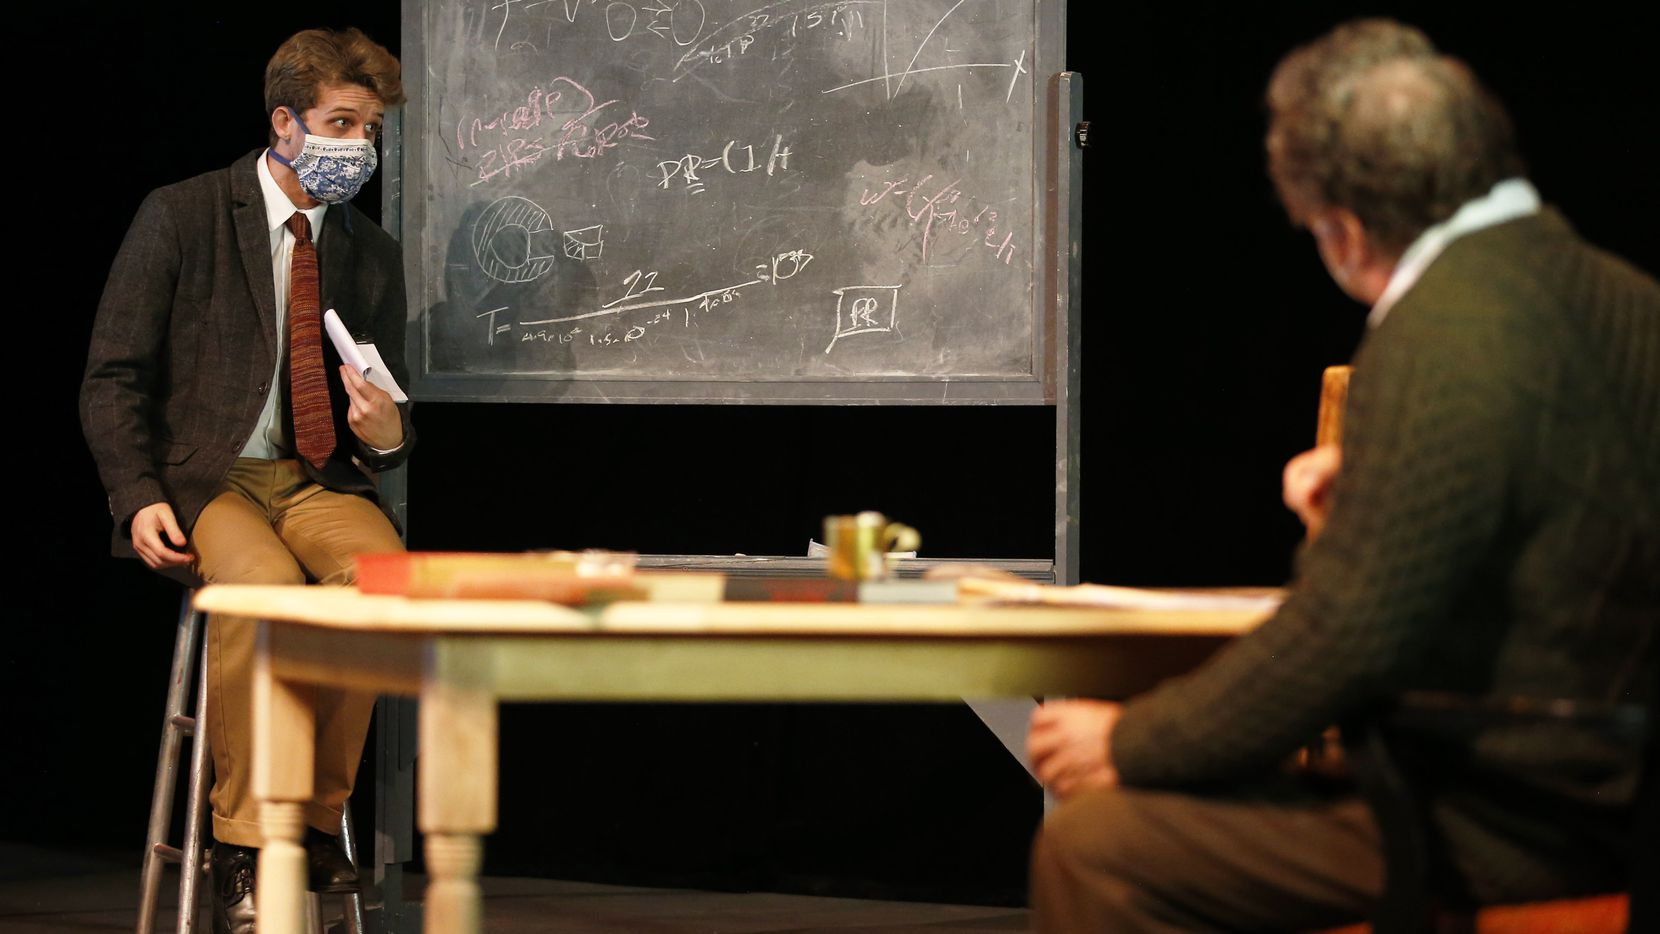 """Robert Oppenheimer played by Evan Michael Woods (left) talks to Albert Einstein played by T.A. Taylor (right) during a rehearsal for 'The Impact of the Gadget on Civilization' on the main stage at Addison Theatre Centre on Sept 5, 2020. The play is a """"what if"""" story: What if Einstein had gone to Los Alamos to talk Oppenheimer out of creating the atomic bomb? The production will stream online Sept. 17-26, presented by Imprint Theatreworks."""